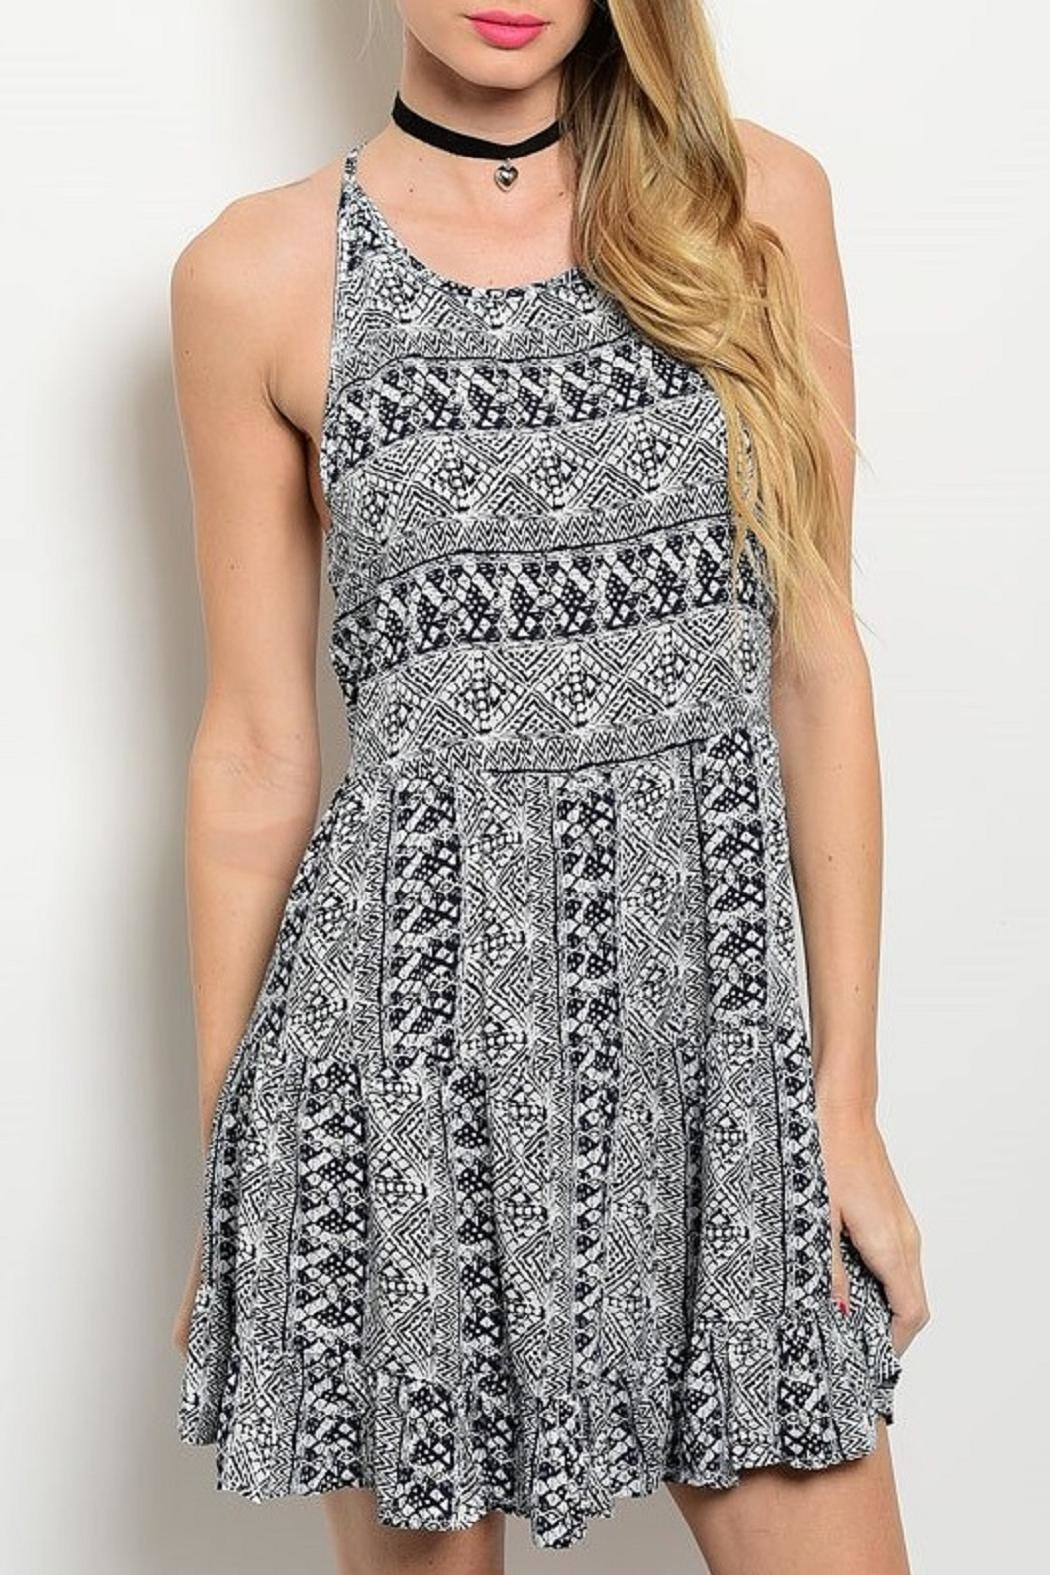 Adore Clothes & More Navy/white Summer Dress - Main Image